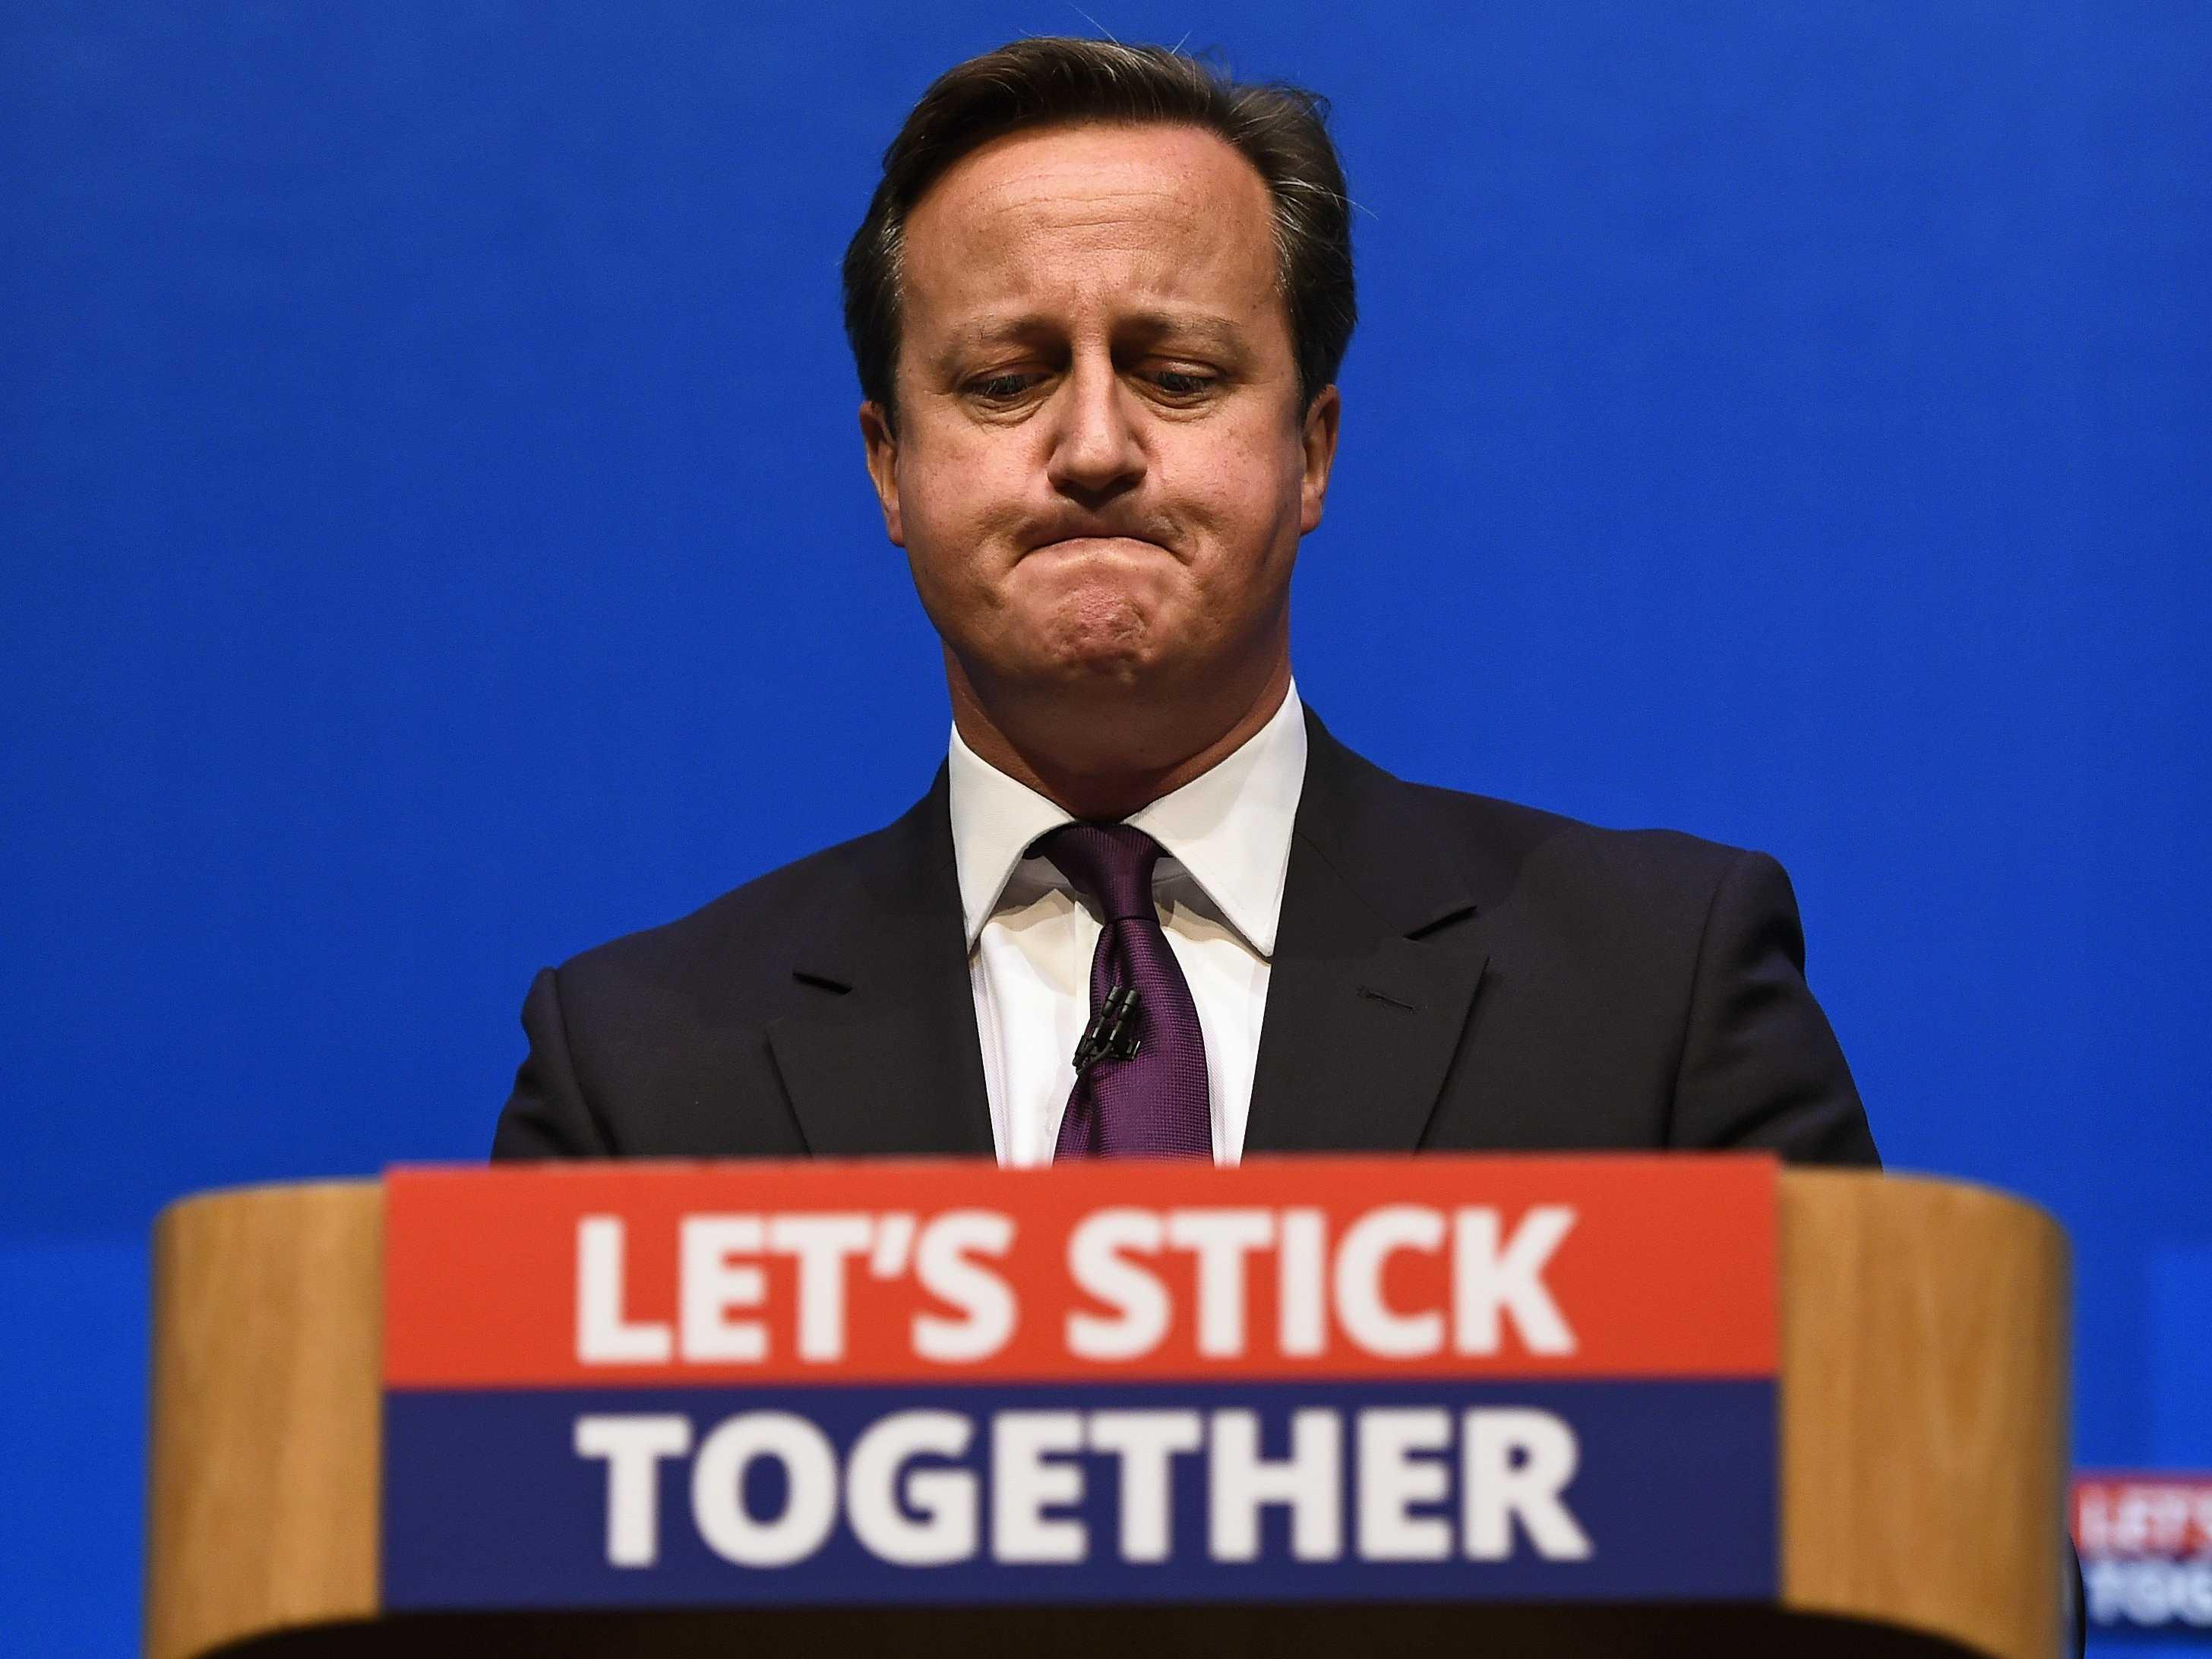 brexit-beckons-as-97-of-britons-think-david-cameron-cant-get-a-better-eu-deal1